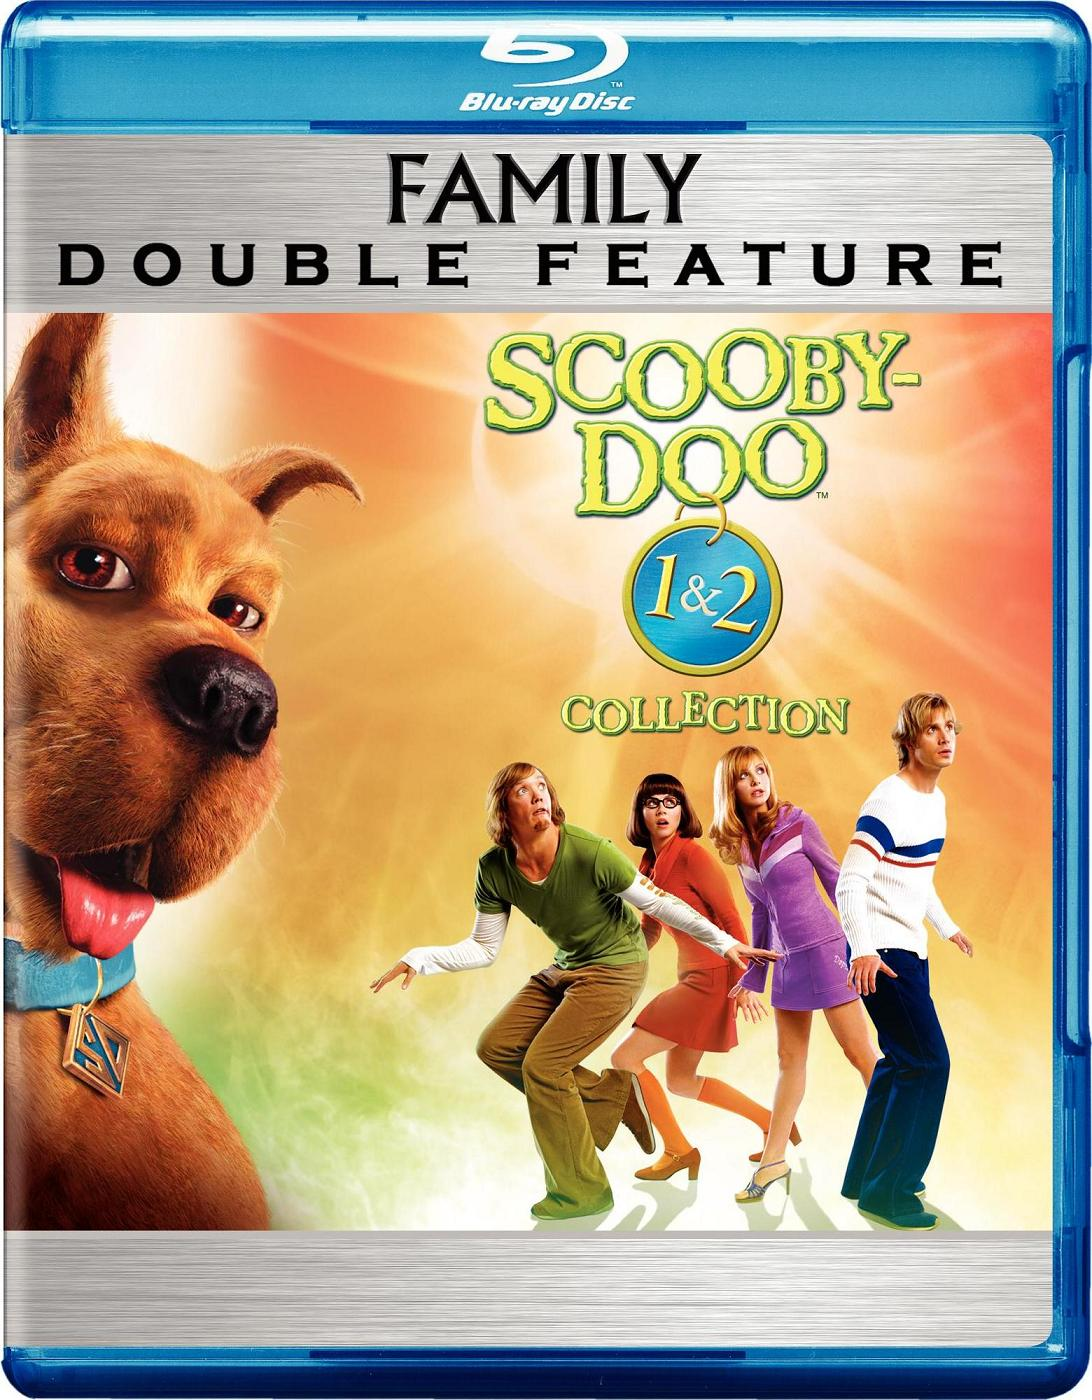 Review: Scooby Doo 1&2 Collection{Blu-Ray}